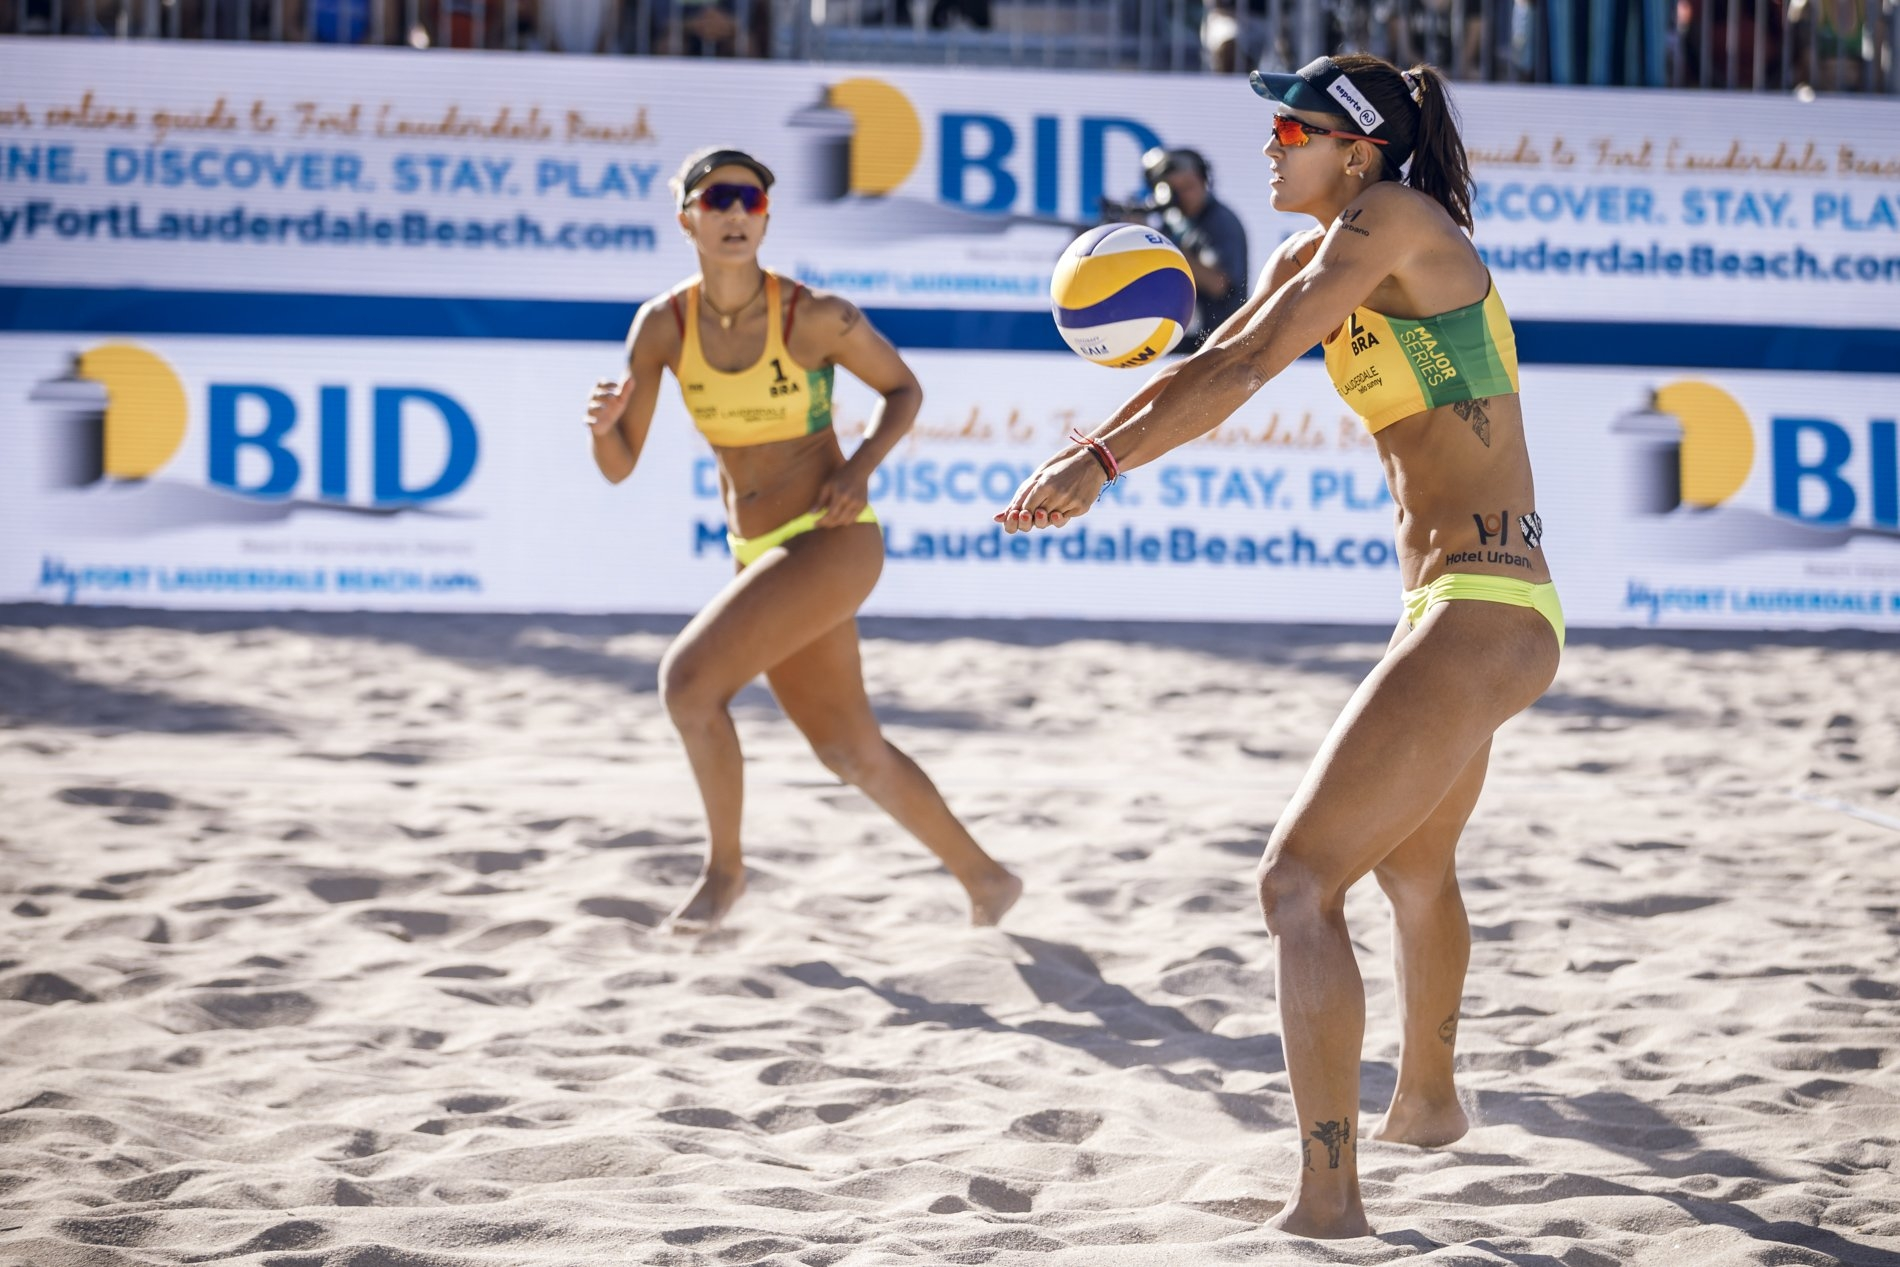 Barbara and Fernanda are third in the world rankings after their victory in Fort Lauderdale